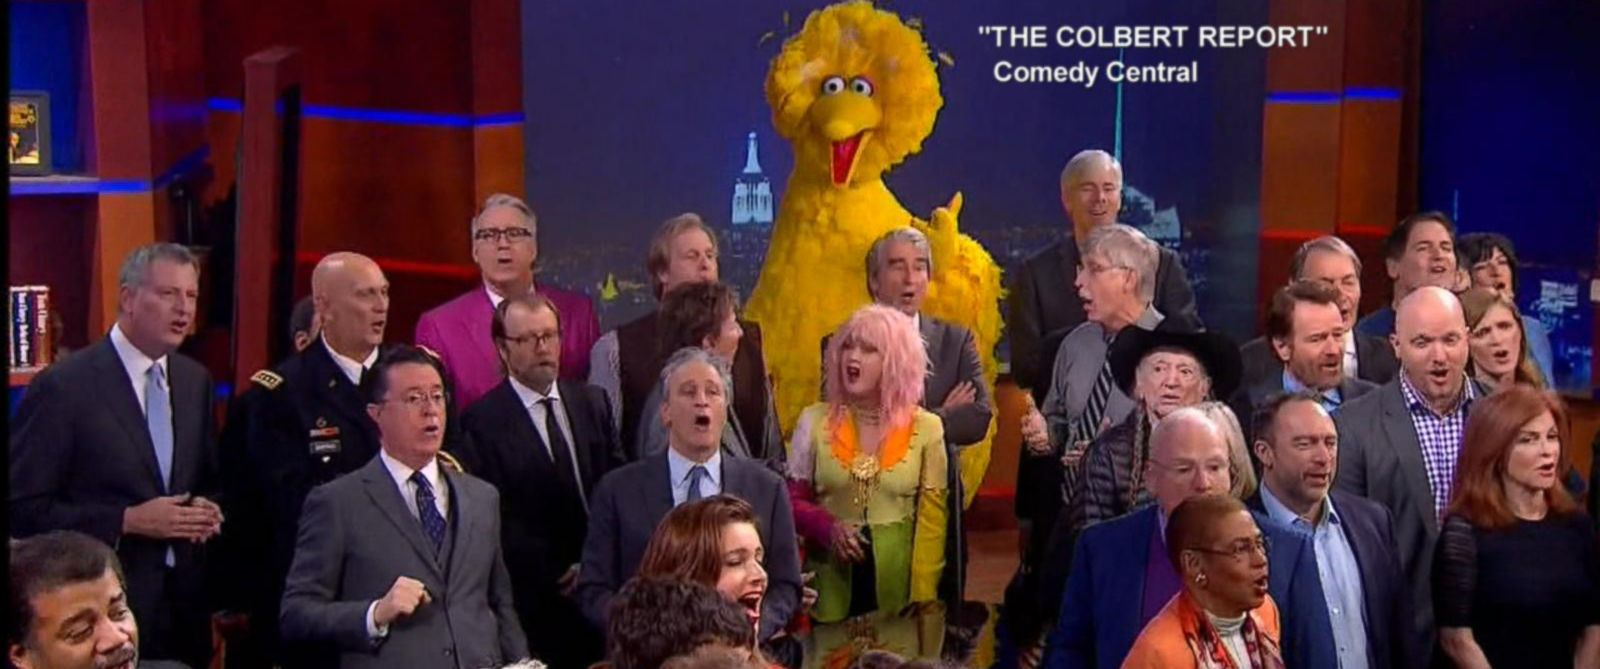 """PHOTO: Stephen Colbert was joined by numerous celebrities on the final episode of """"The Colbert Report"""" on Comedy Central, Dec. 18, 2014."""